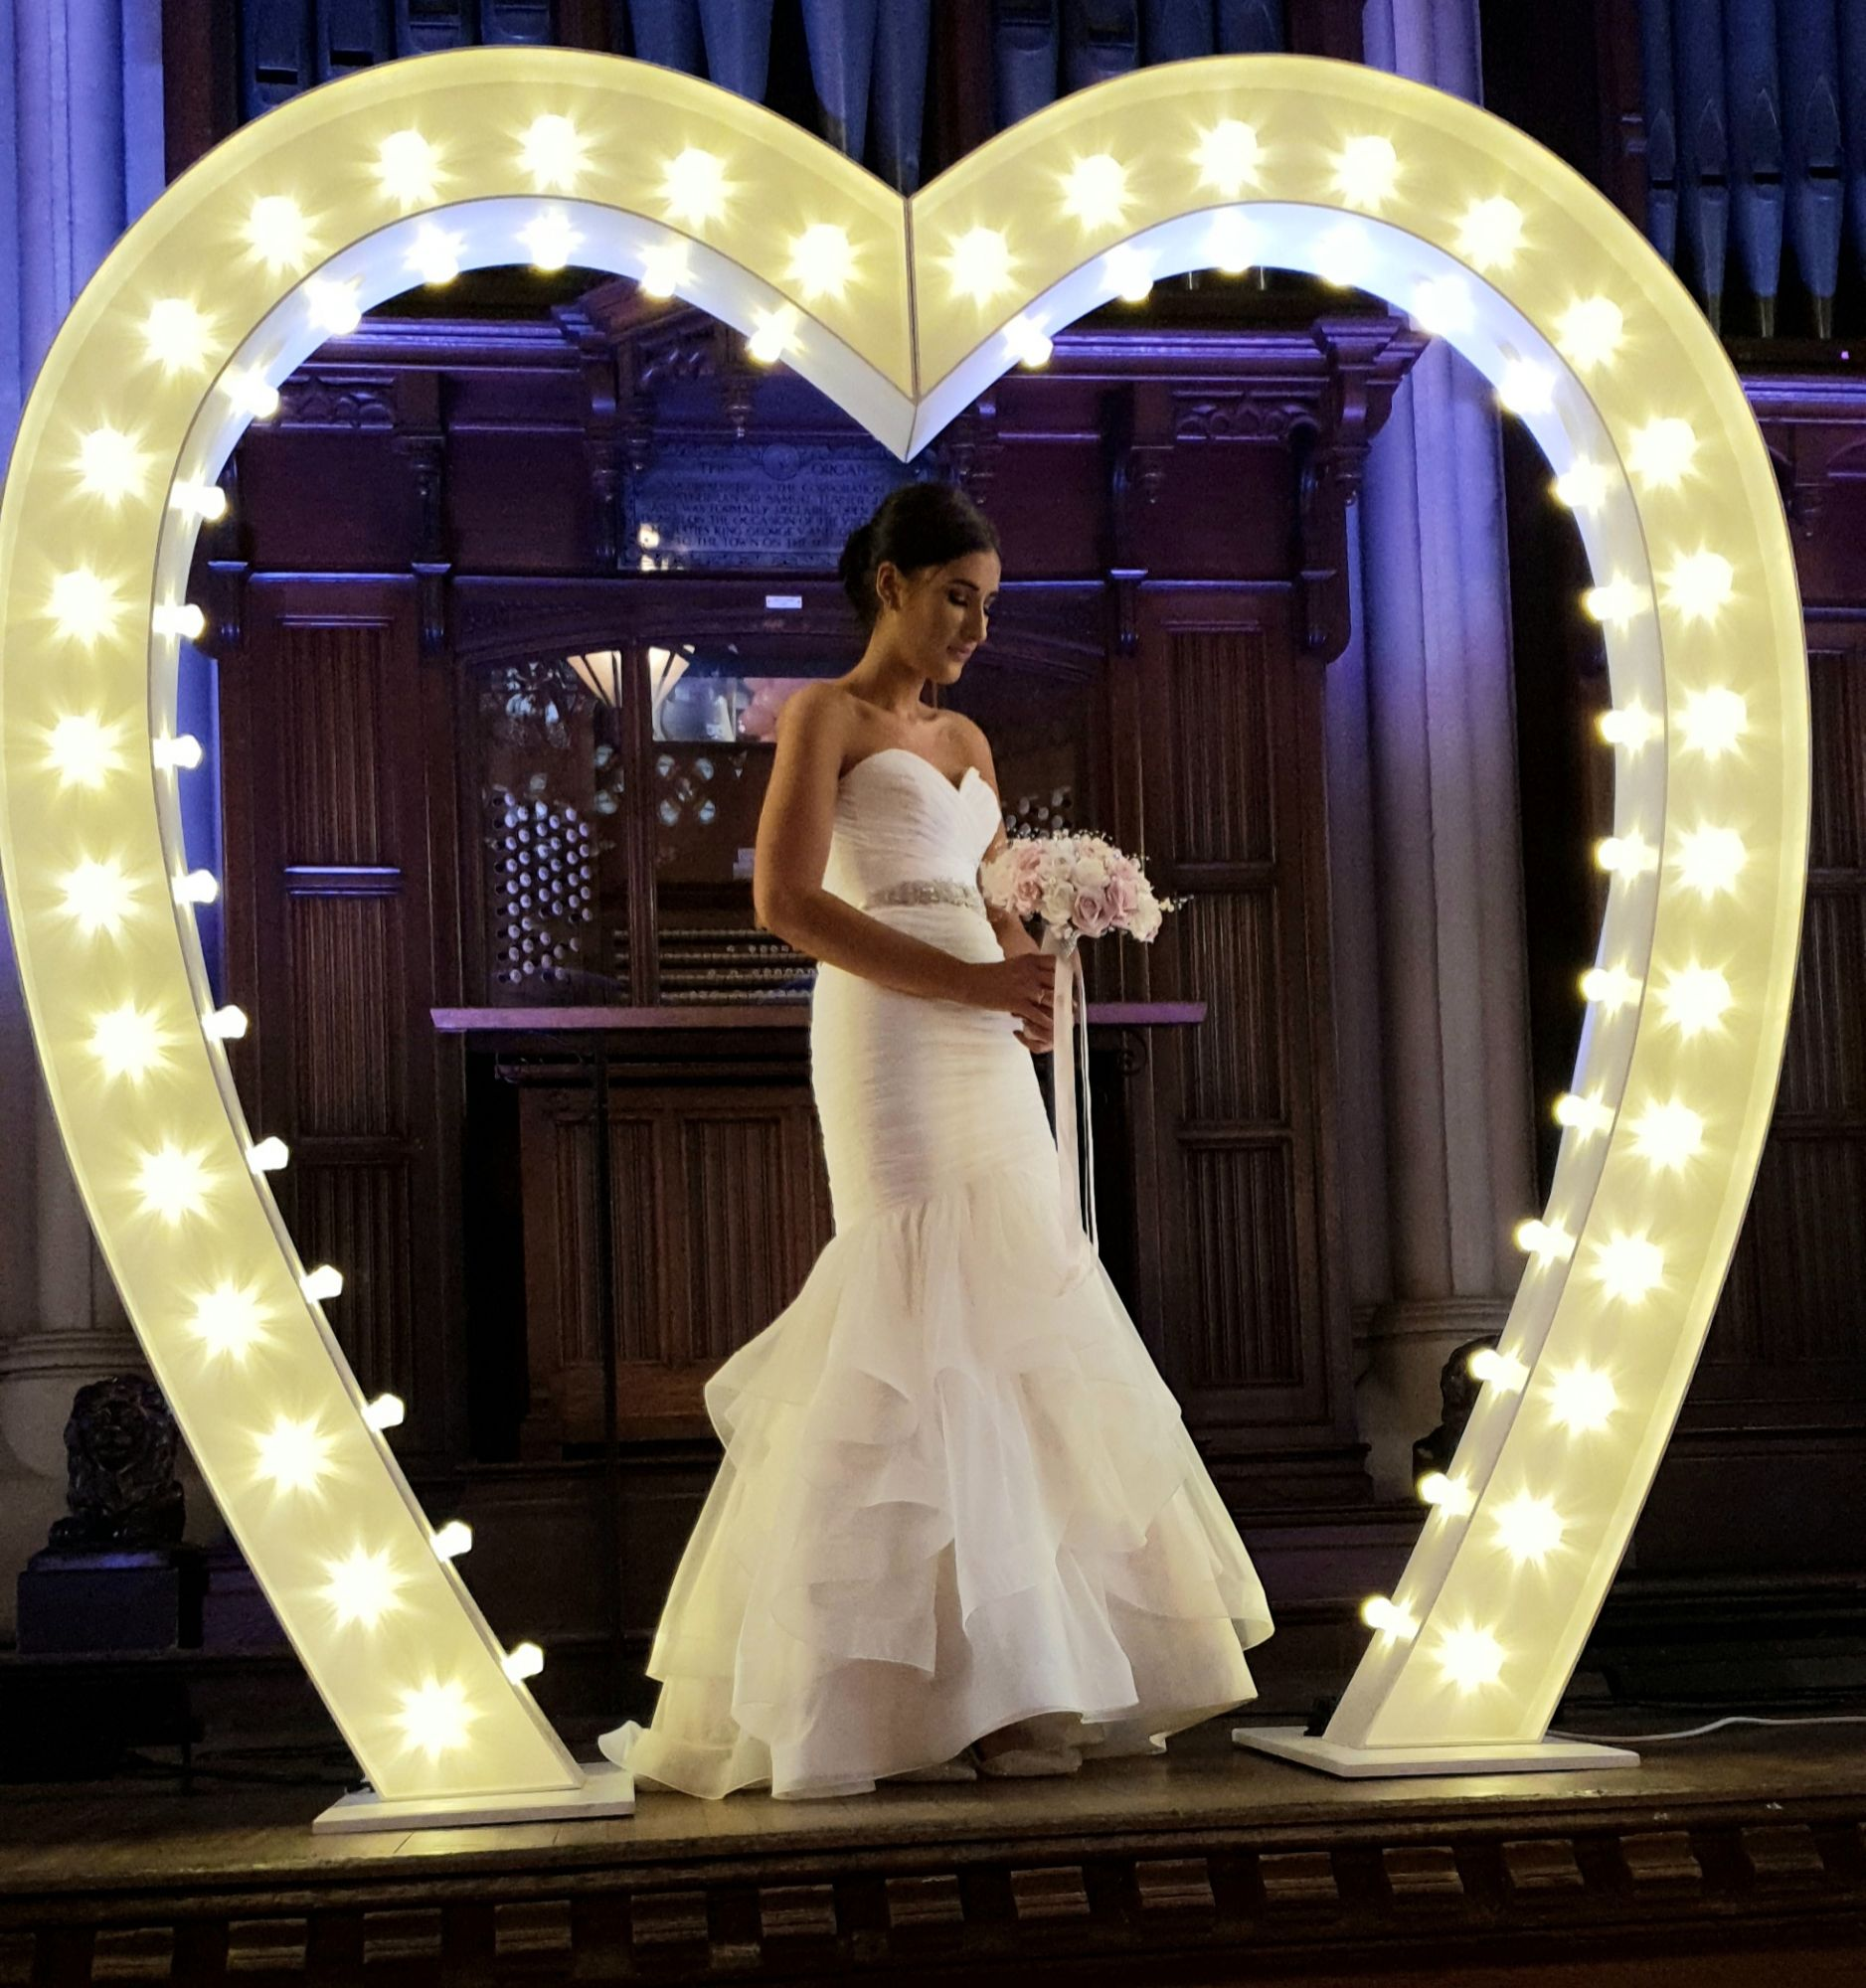 Large Love Heart Arch with Bride